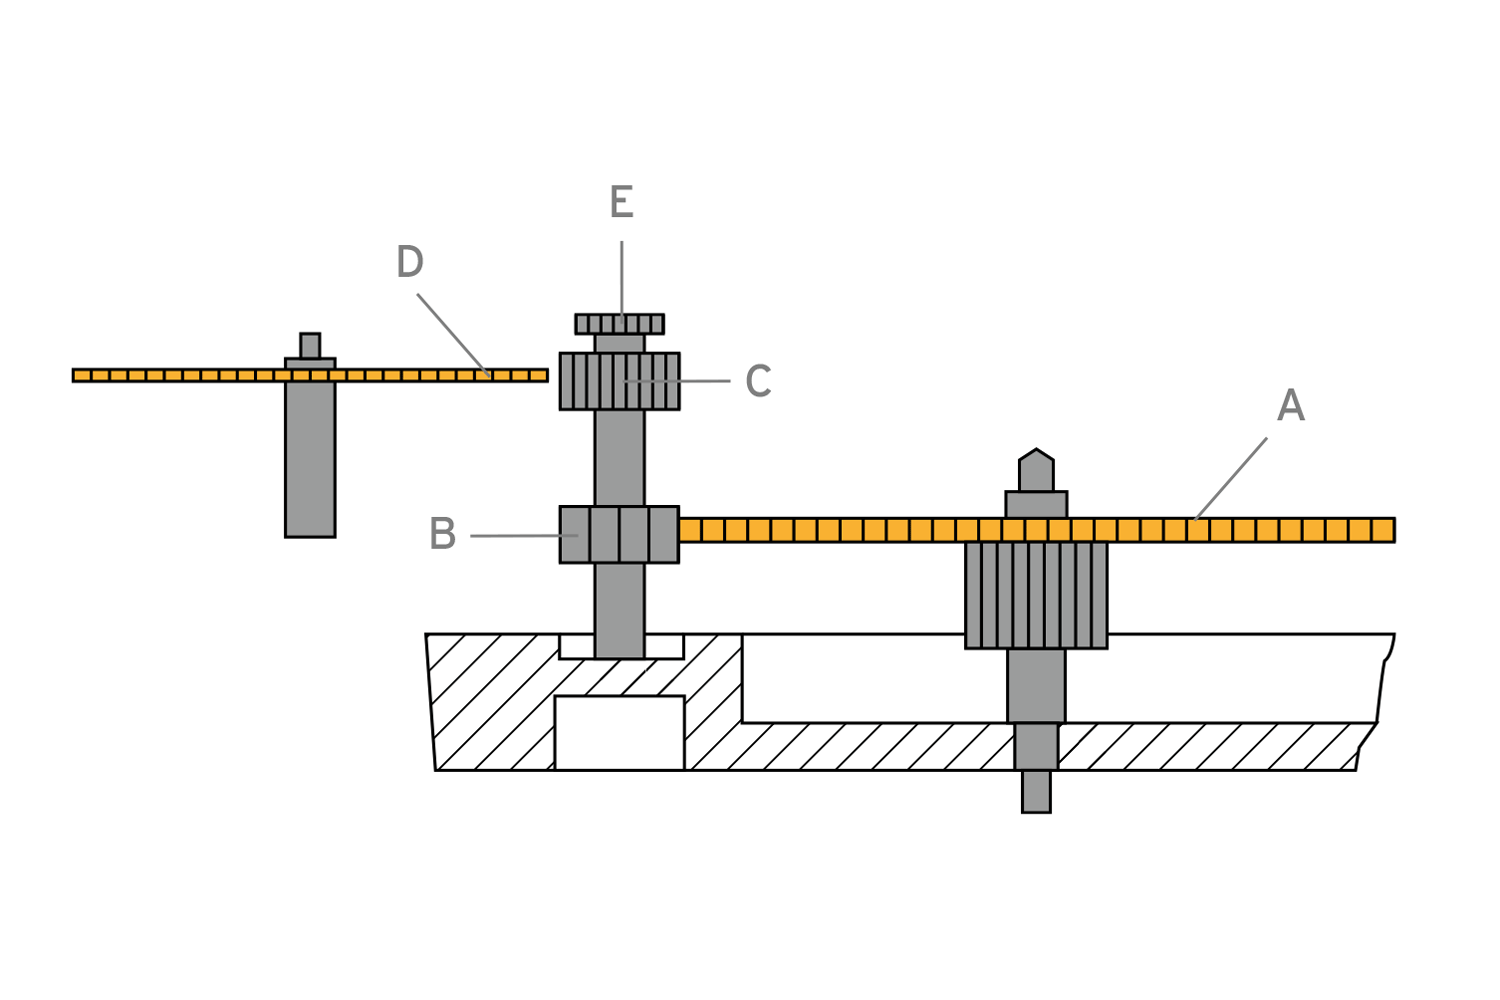 The calibre CRMC1 splits the torque between the chronograph's various counters. The seconds and minute wheels of the movement (A) thereby permanently interlock with the lower teeth of the two oscillating pinions (B). When the rockers are moved, their upper teeth (C), which link to the chronograph's seconds and minute wheels (D), engage or disengage depending on whether the chronograph is activated or stopped (E).